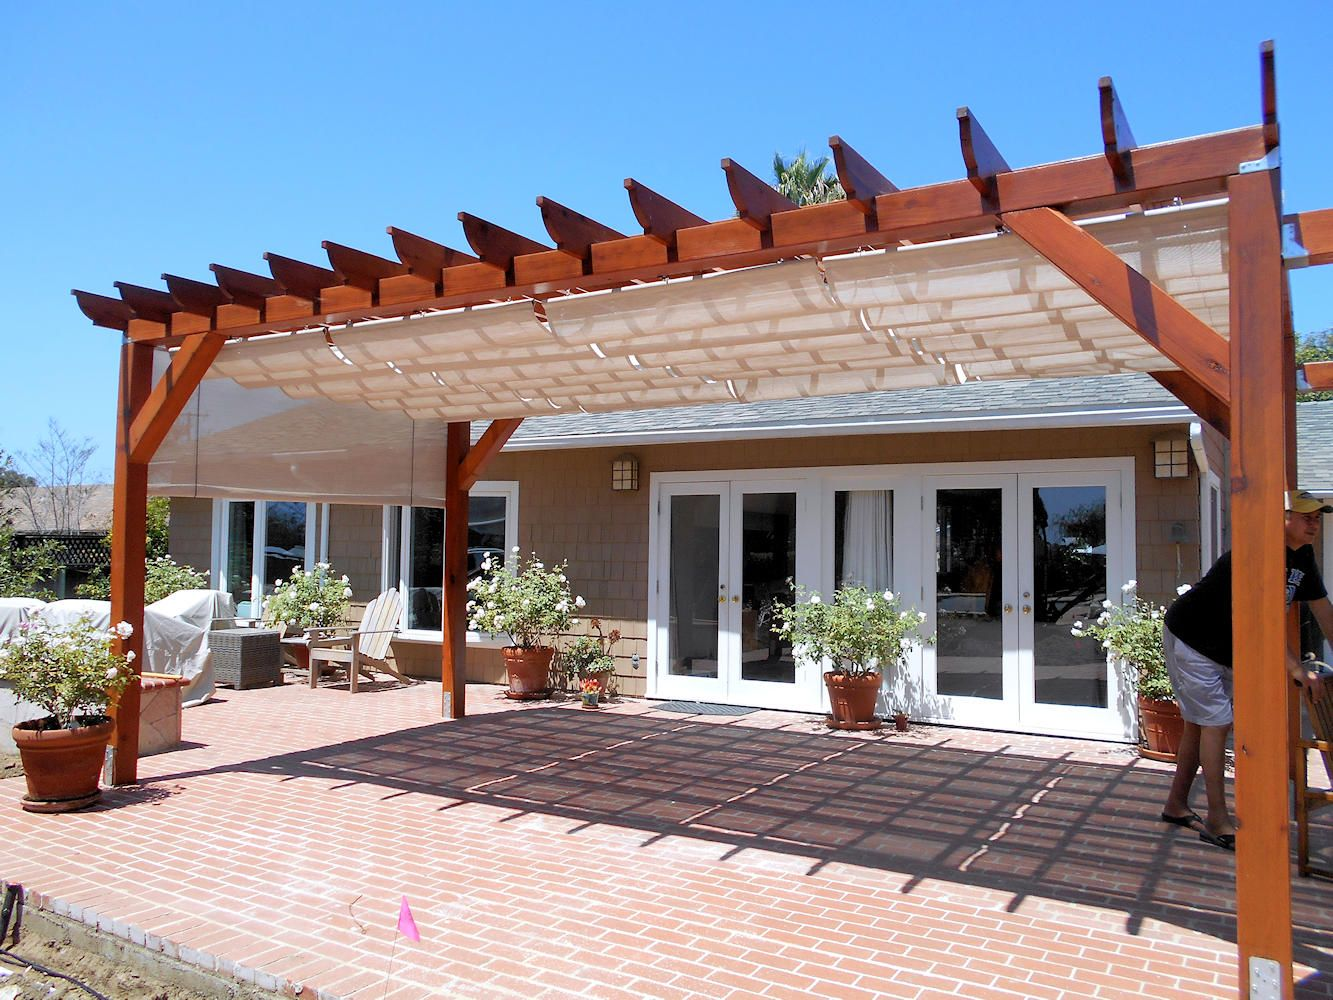 fixed fancy lovable awning as outdoor exterior decors wood small double little under design wooden window ideas covers house white deck frames in awnings patio home for your shade glass